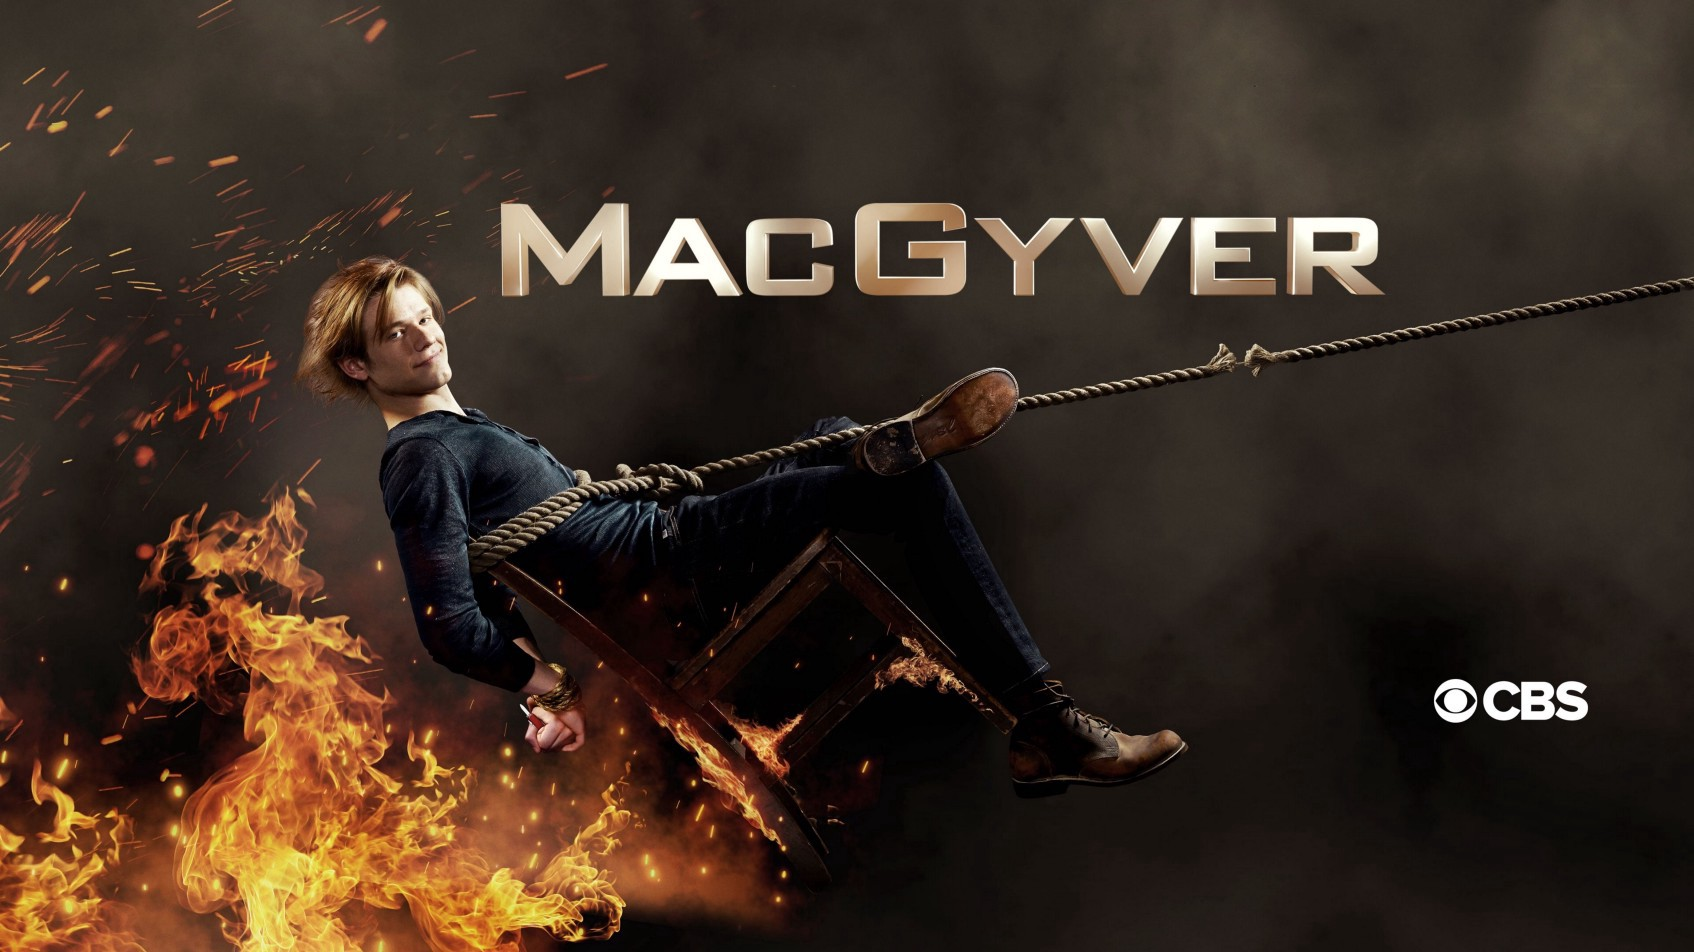 Macgyver Season 5 Episode 7